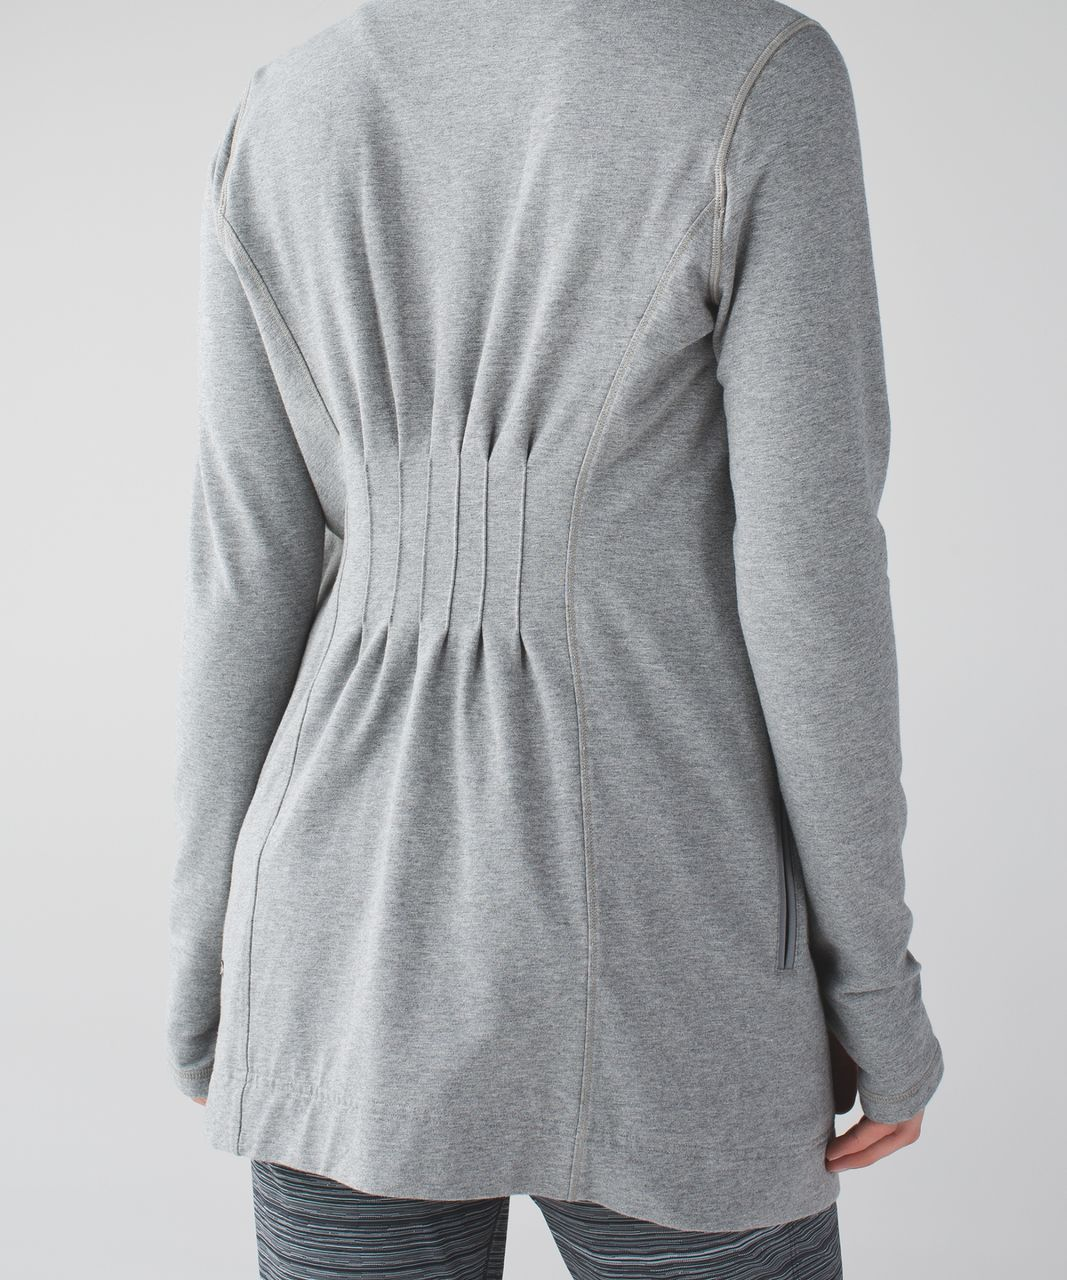 Lululemon Restore Wrap - Heathered Medium Grey